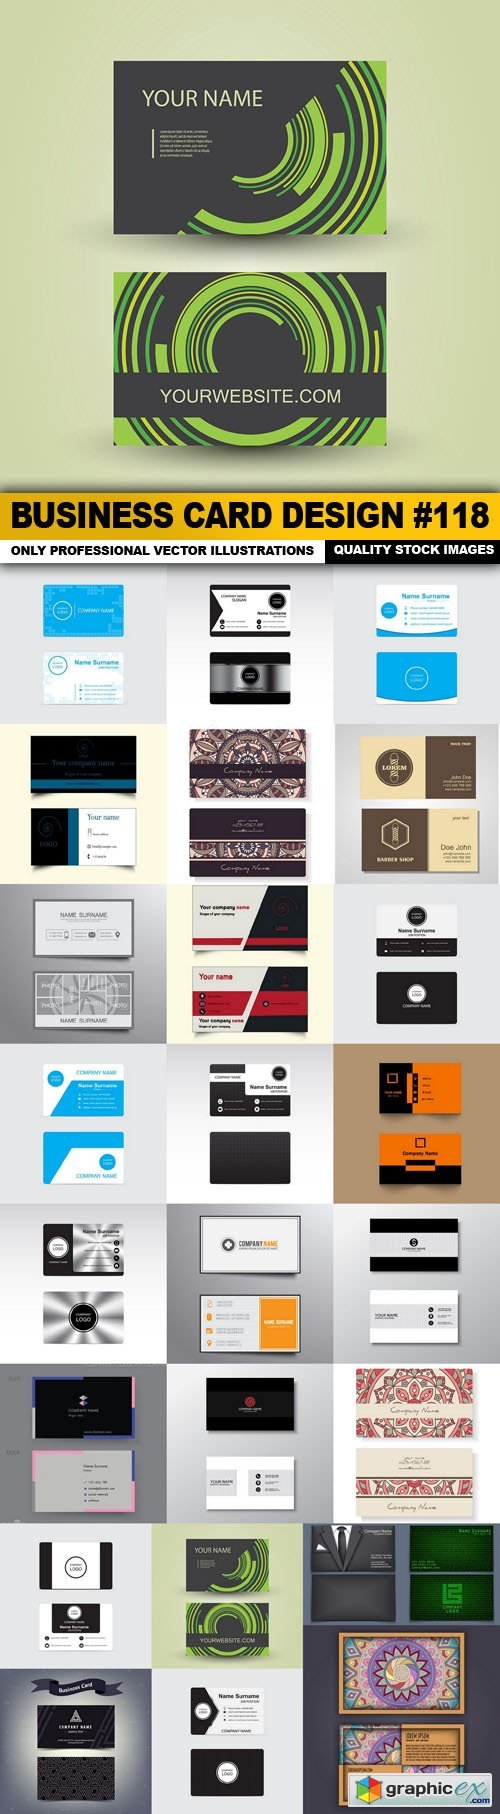 Business Card Design #118 - 25 Vector